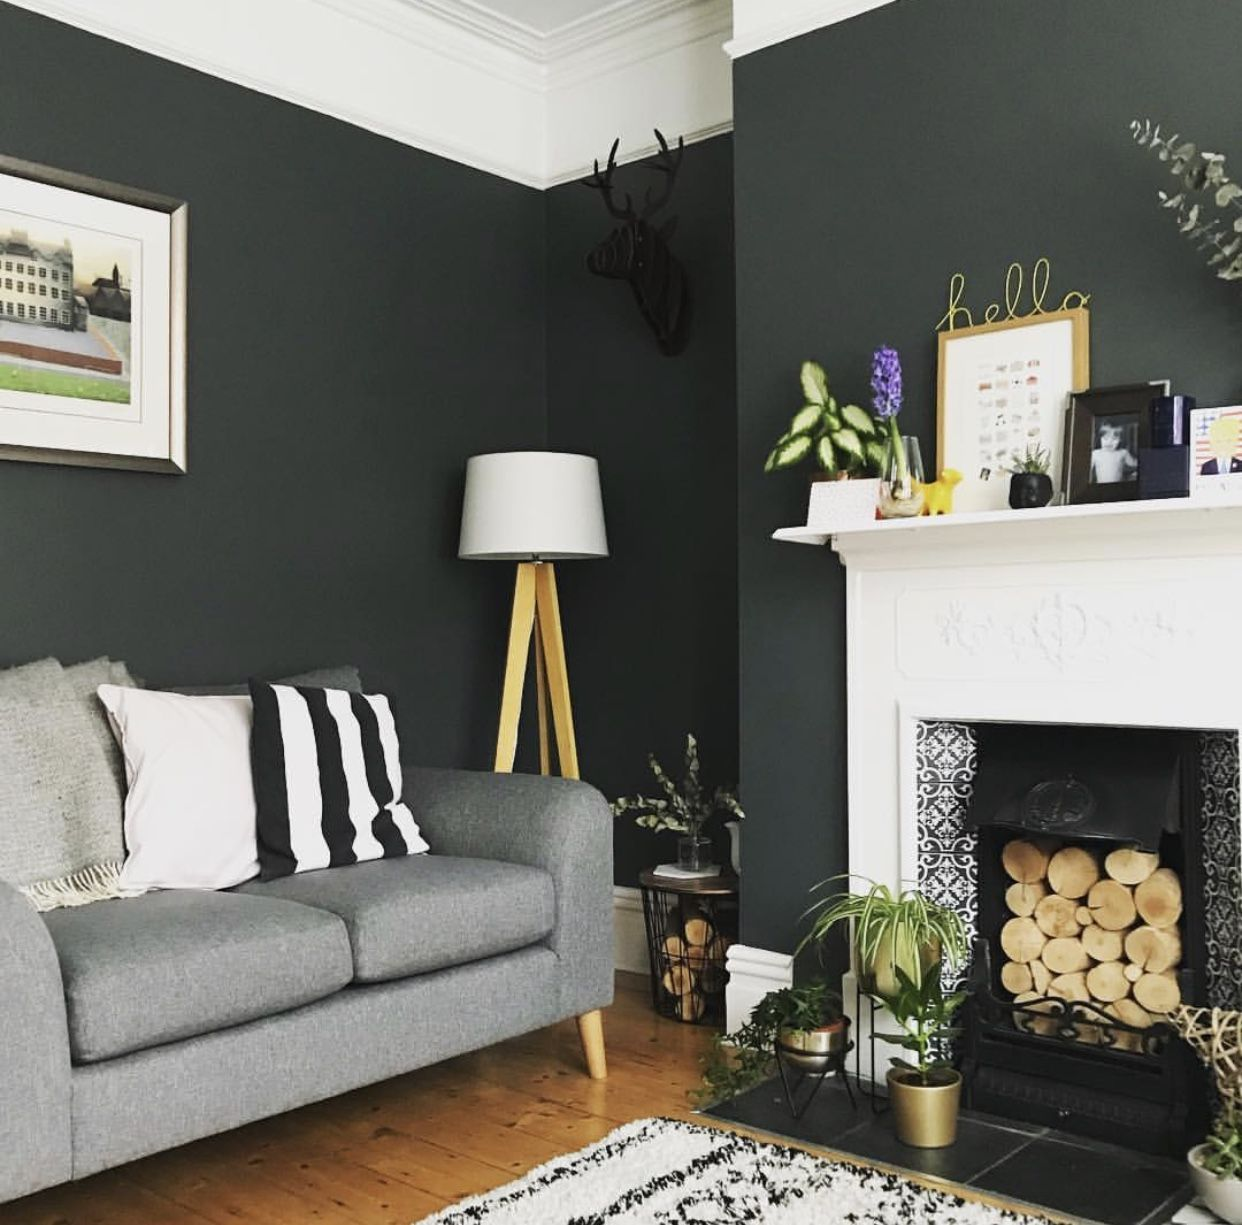 Pin By Sarah Starrs On Dwell Living Room Grey Home Living Room Victorian Living Room